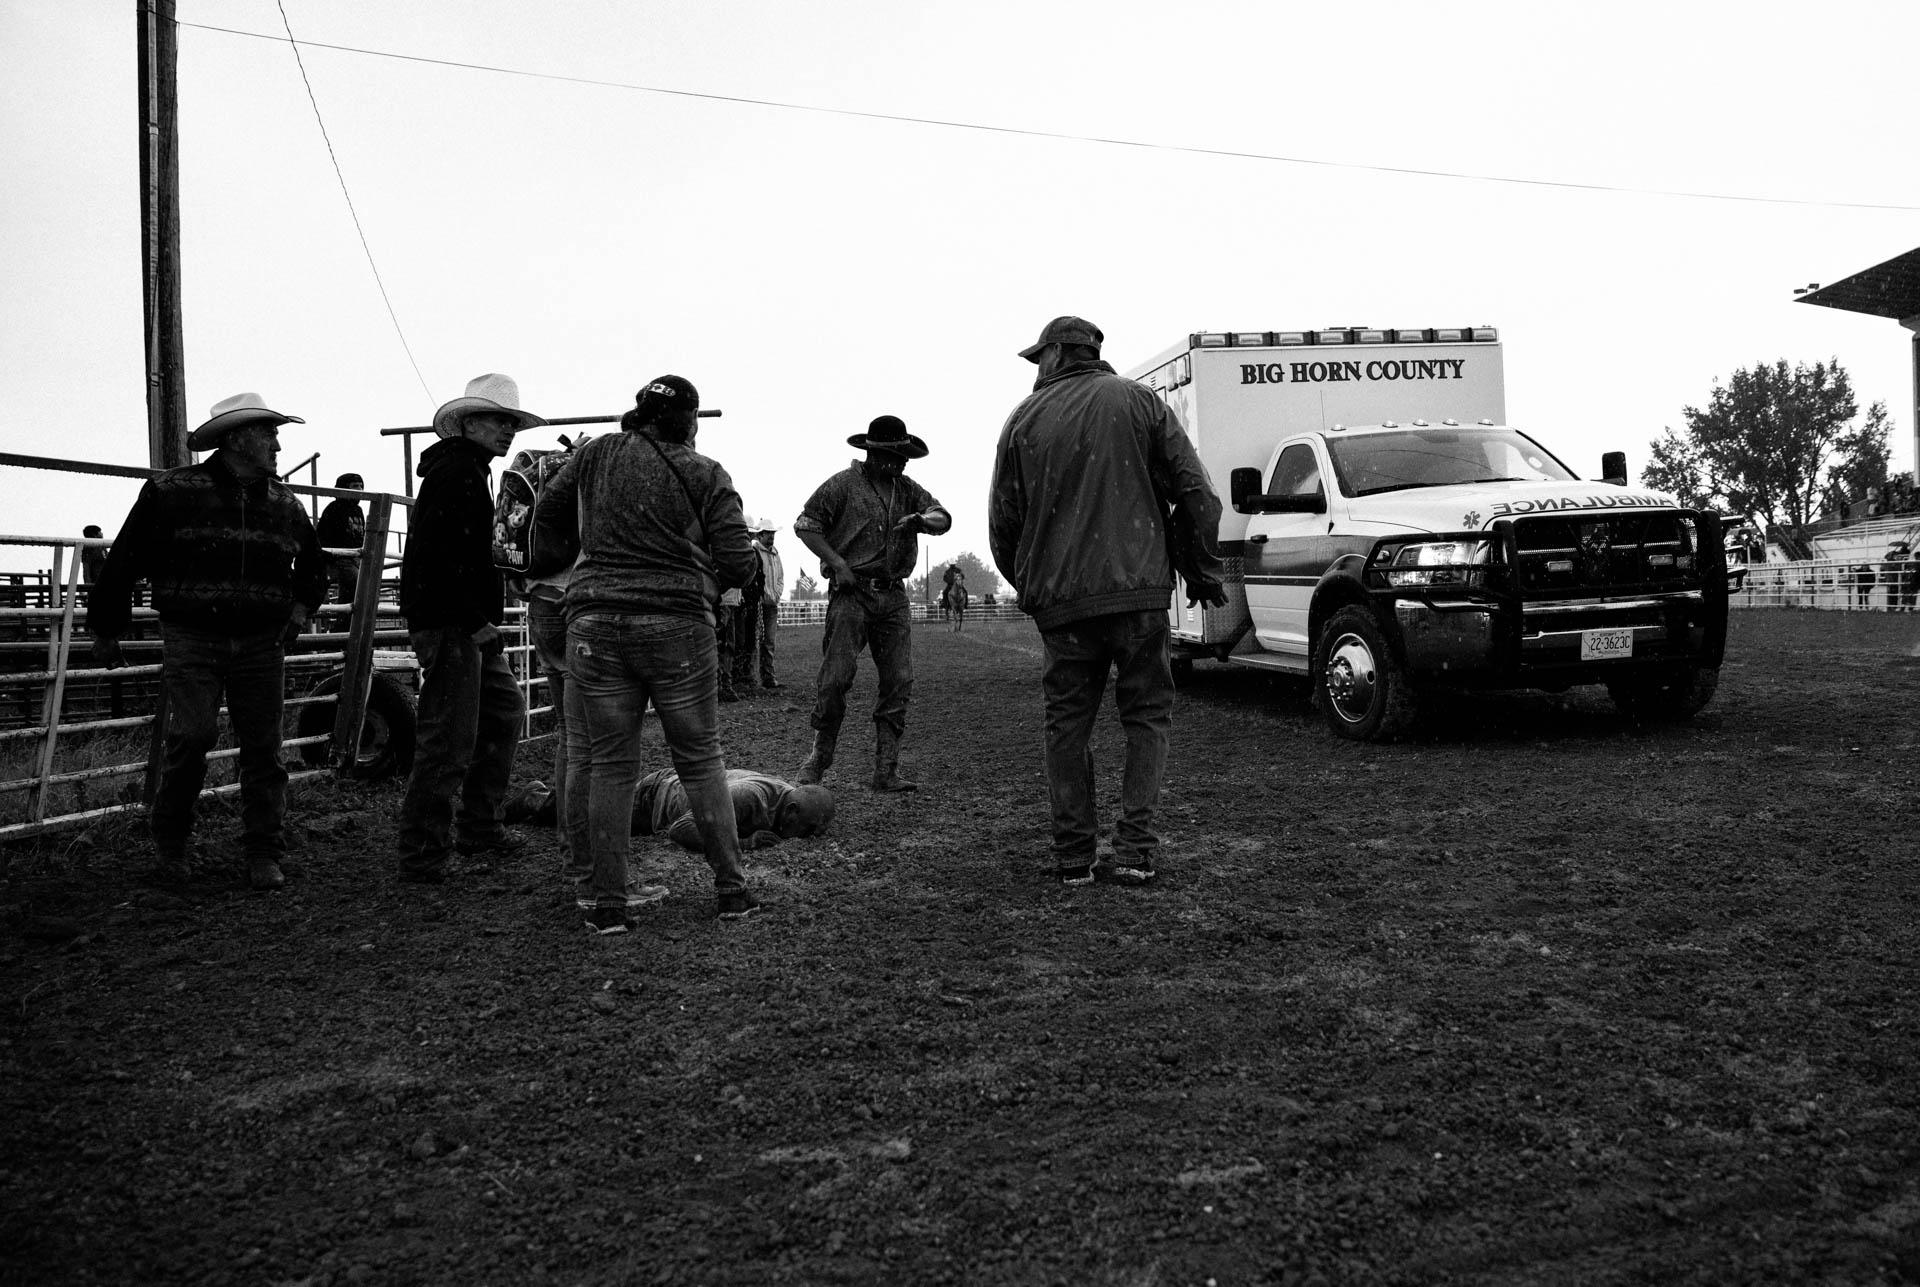 crow-fair-indian-horse-race-rider-injured-accident.JPG